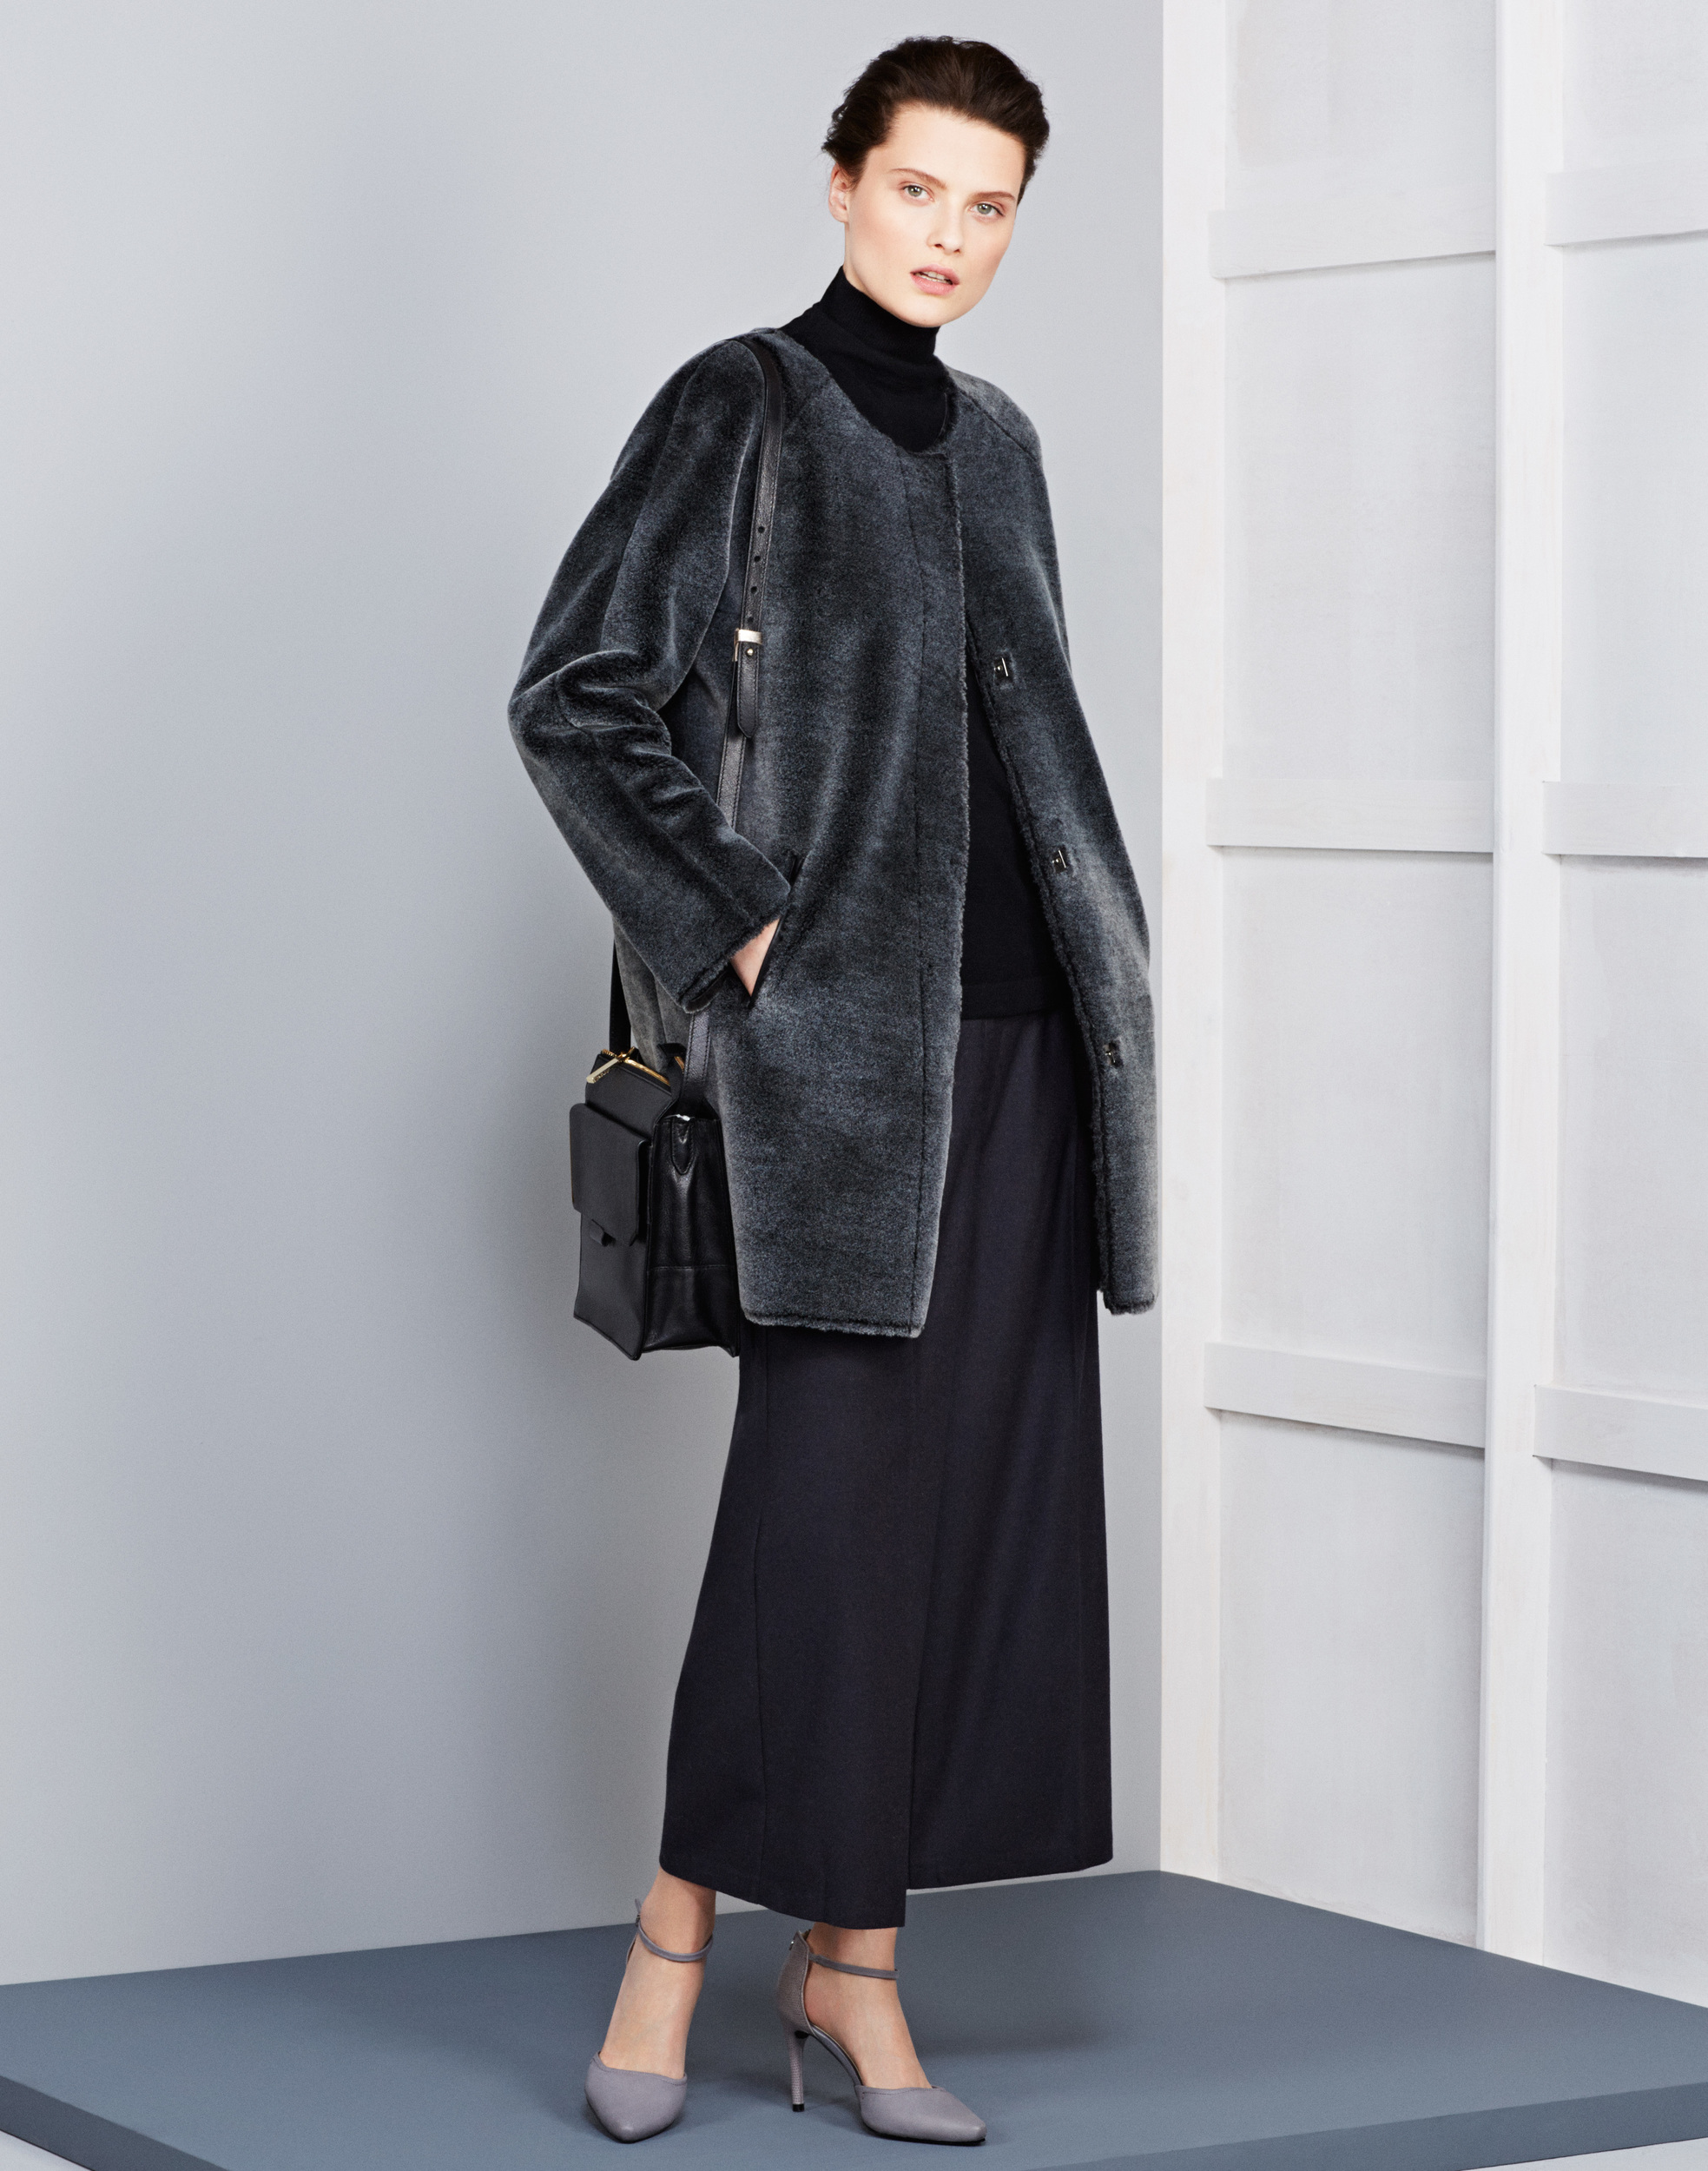 per-una-spz-coat-159-per-una-jumper-109-per-una-trouser-49-50-shoe-49-50-bag-69-1.jpg